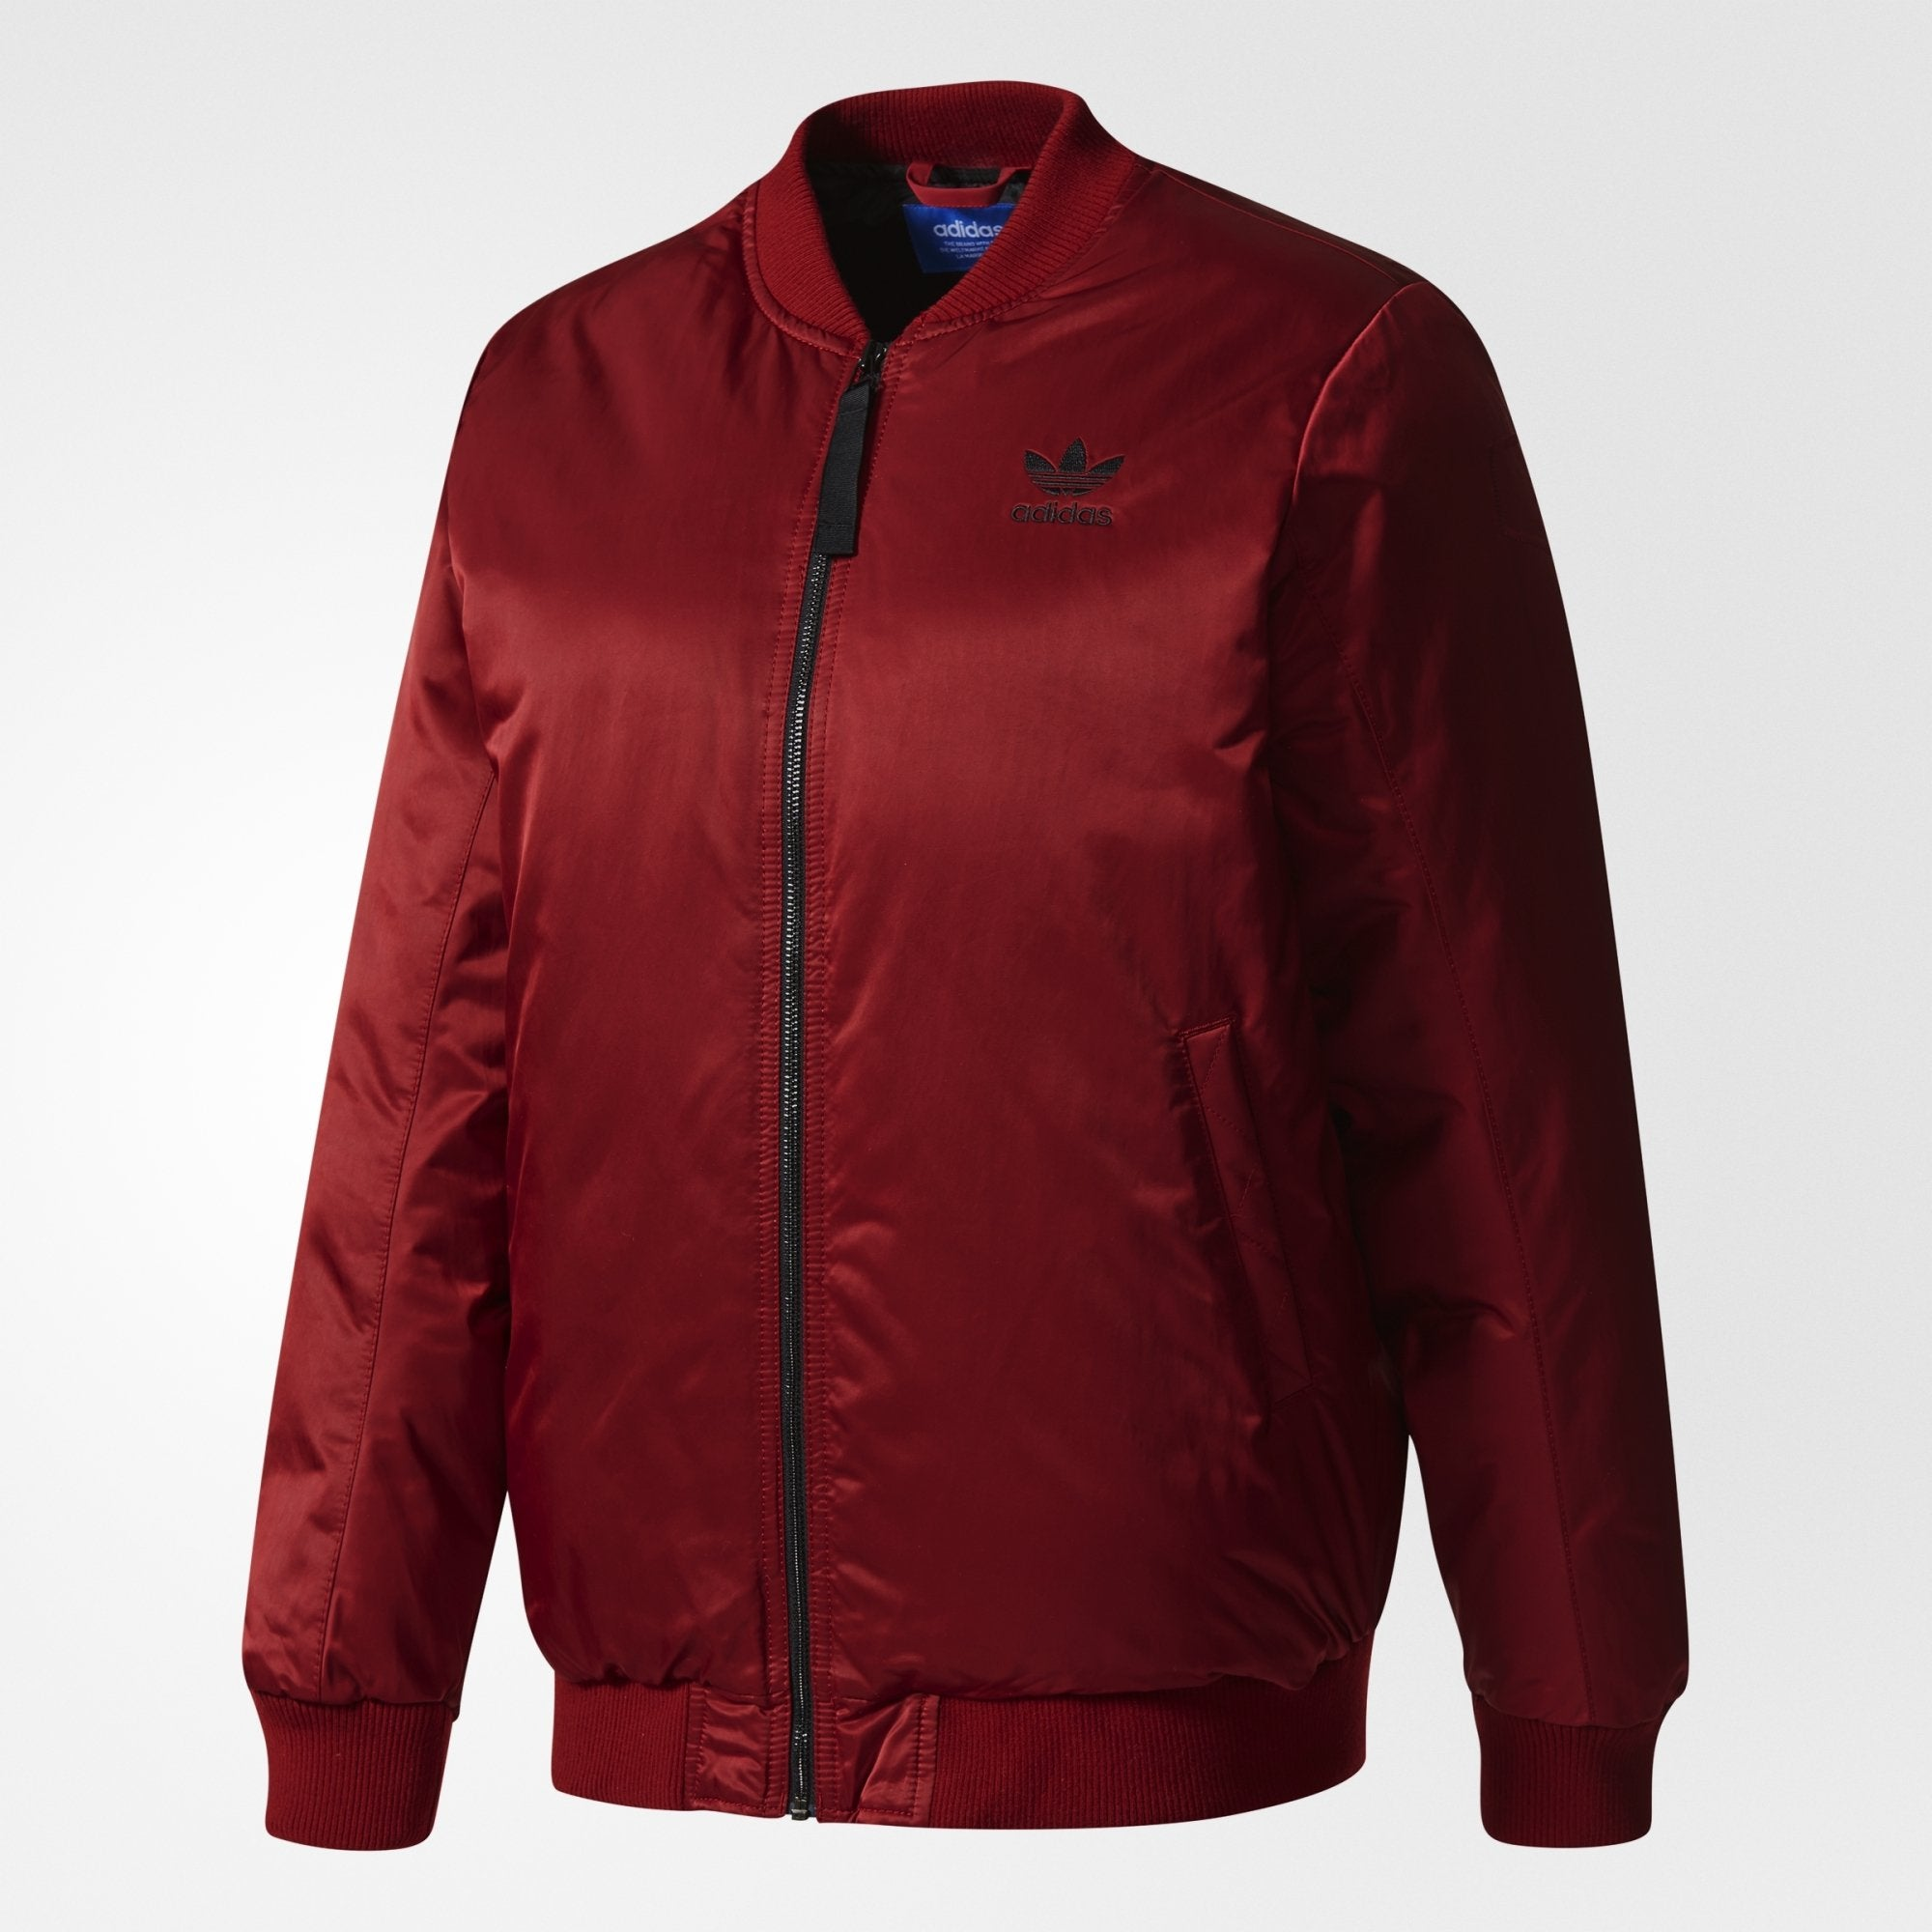 83e4a29c6ea3 Women s adidas Originals Mid Bomber Padded Jacket Collegiate Burgundy